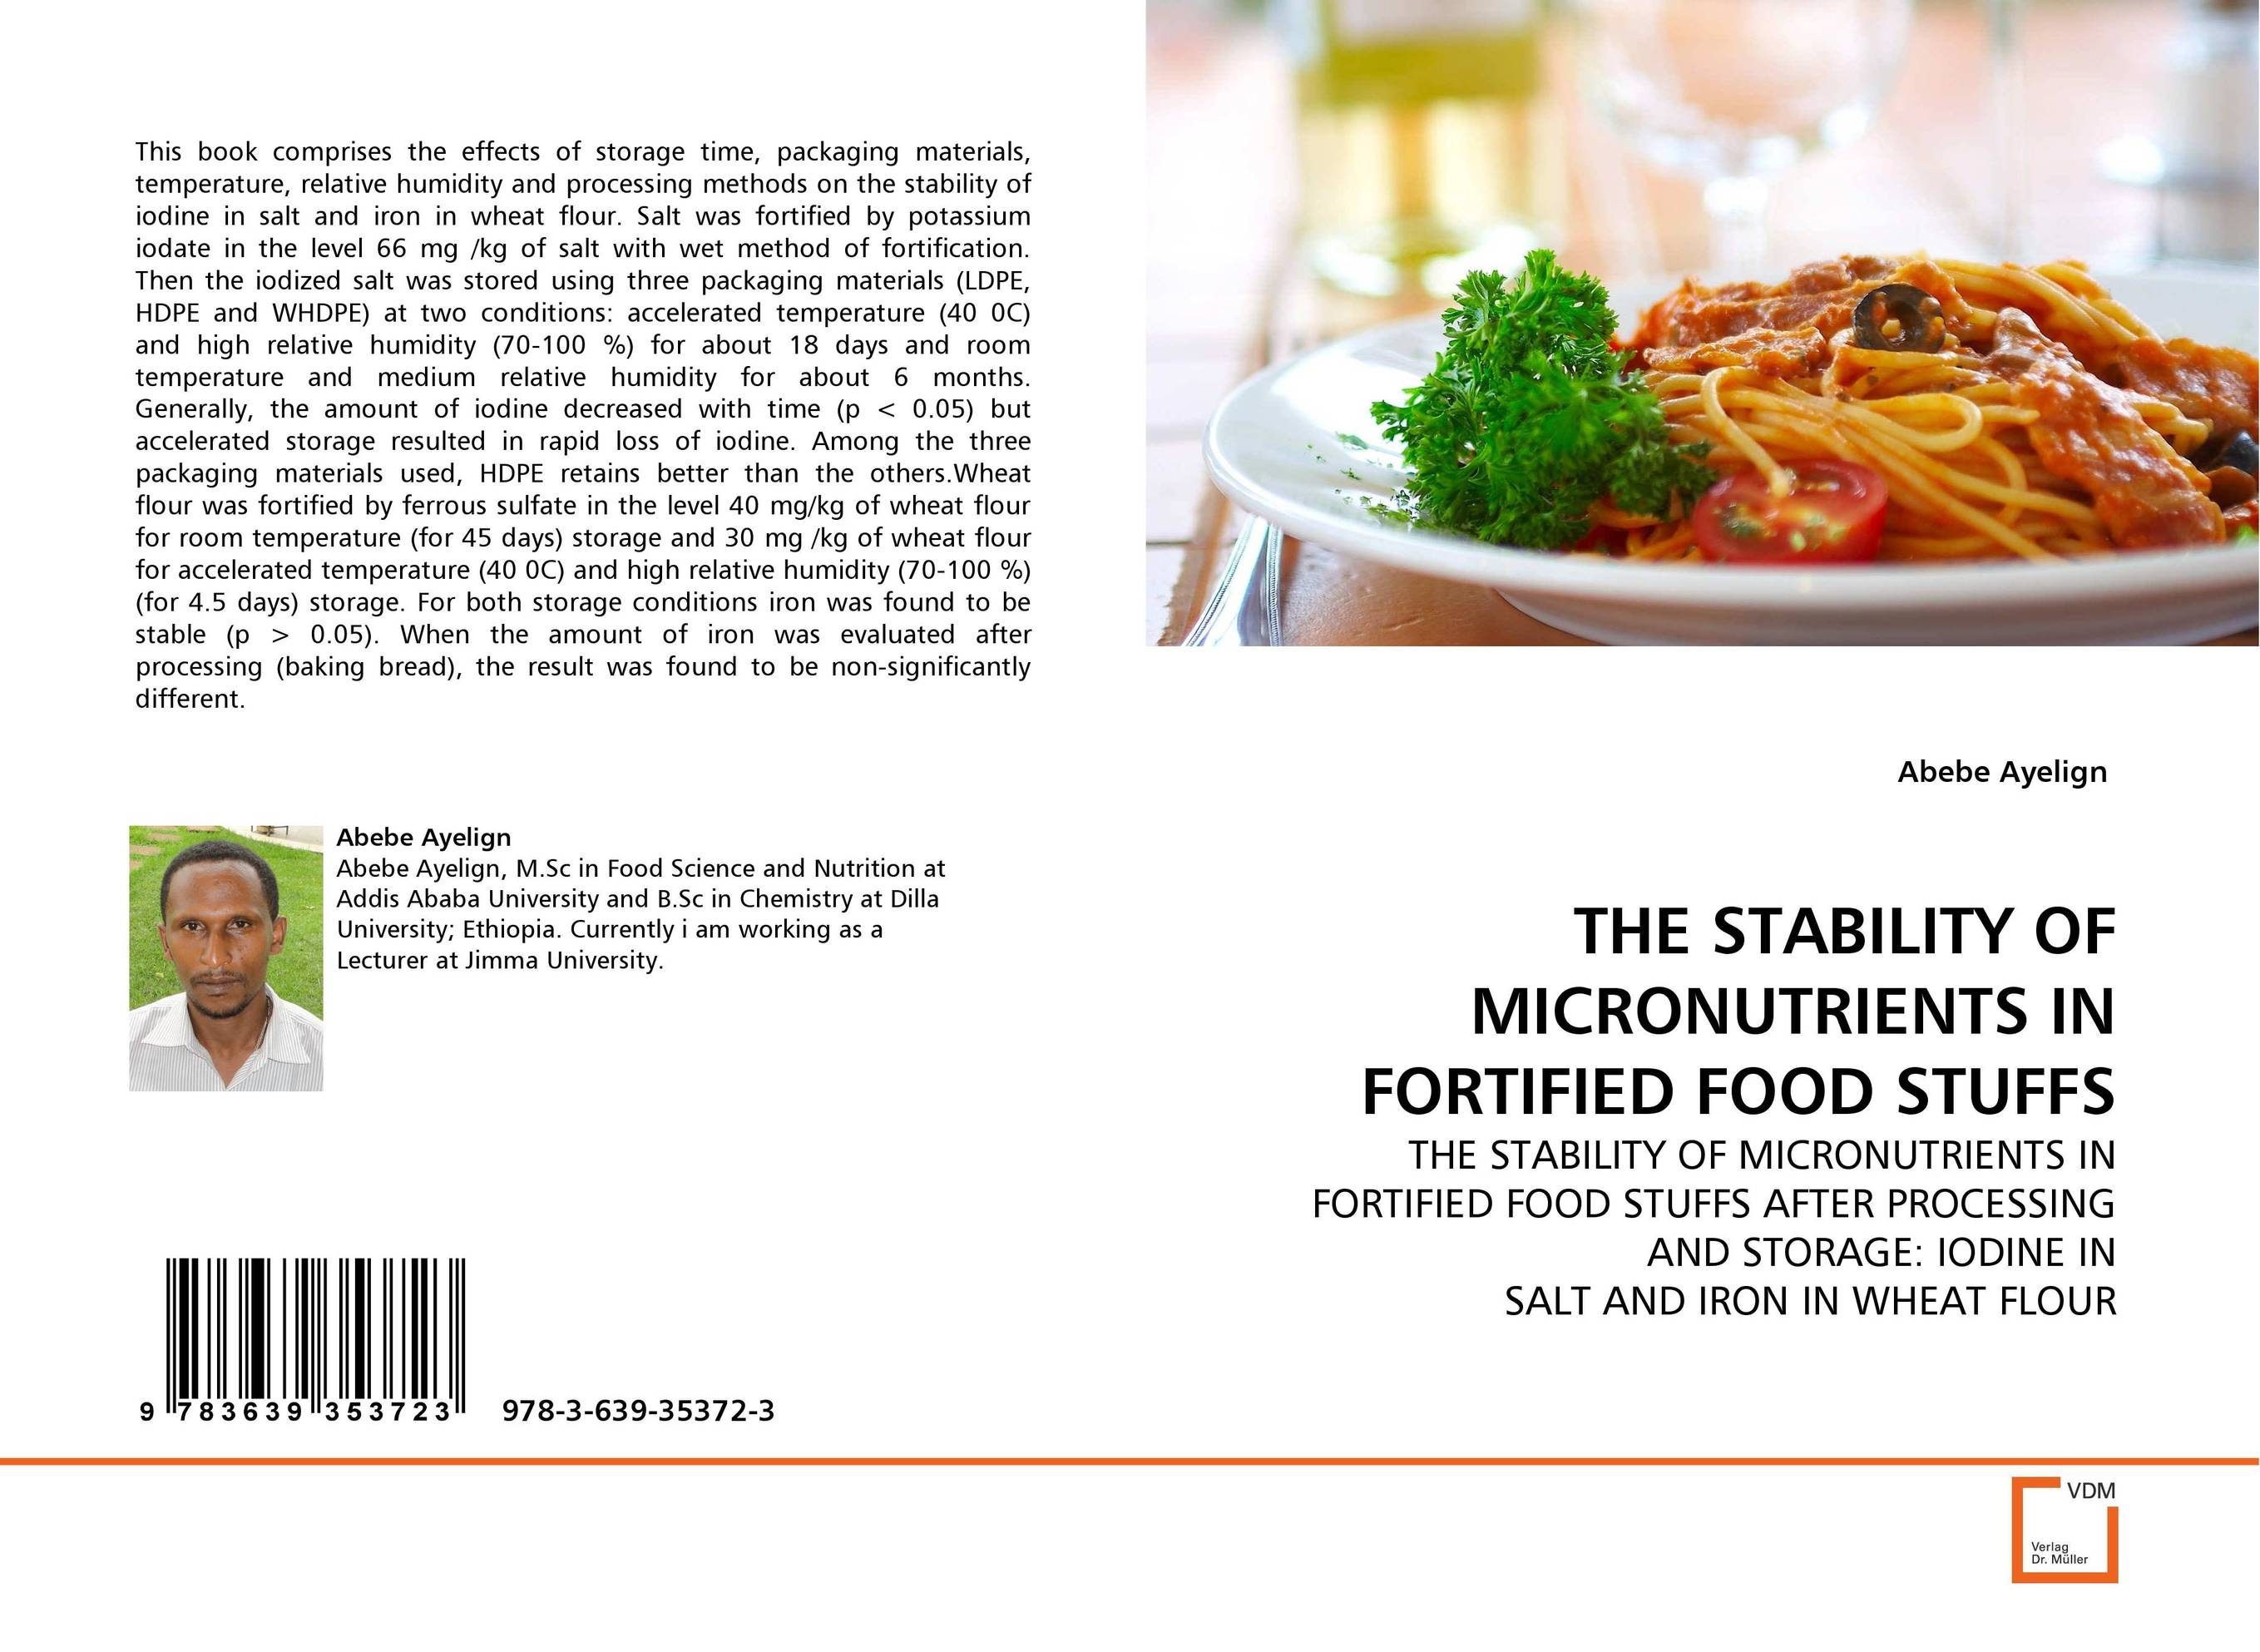 THE STABILITY OF MICRONUTRIENTS IN FORTIFIED FOOD STUFFS 8 in 1 multi functional anemometer temperature and humidity cold dew point illumination at sea level barometer